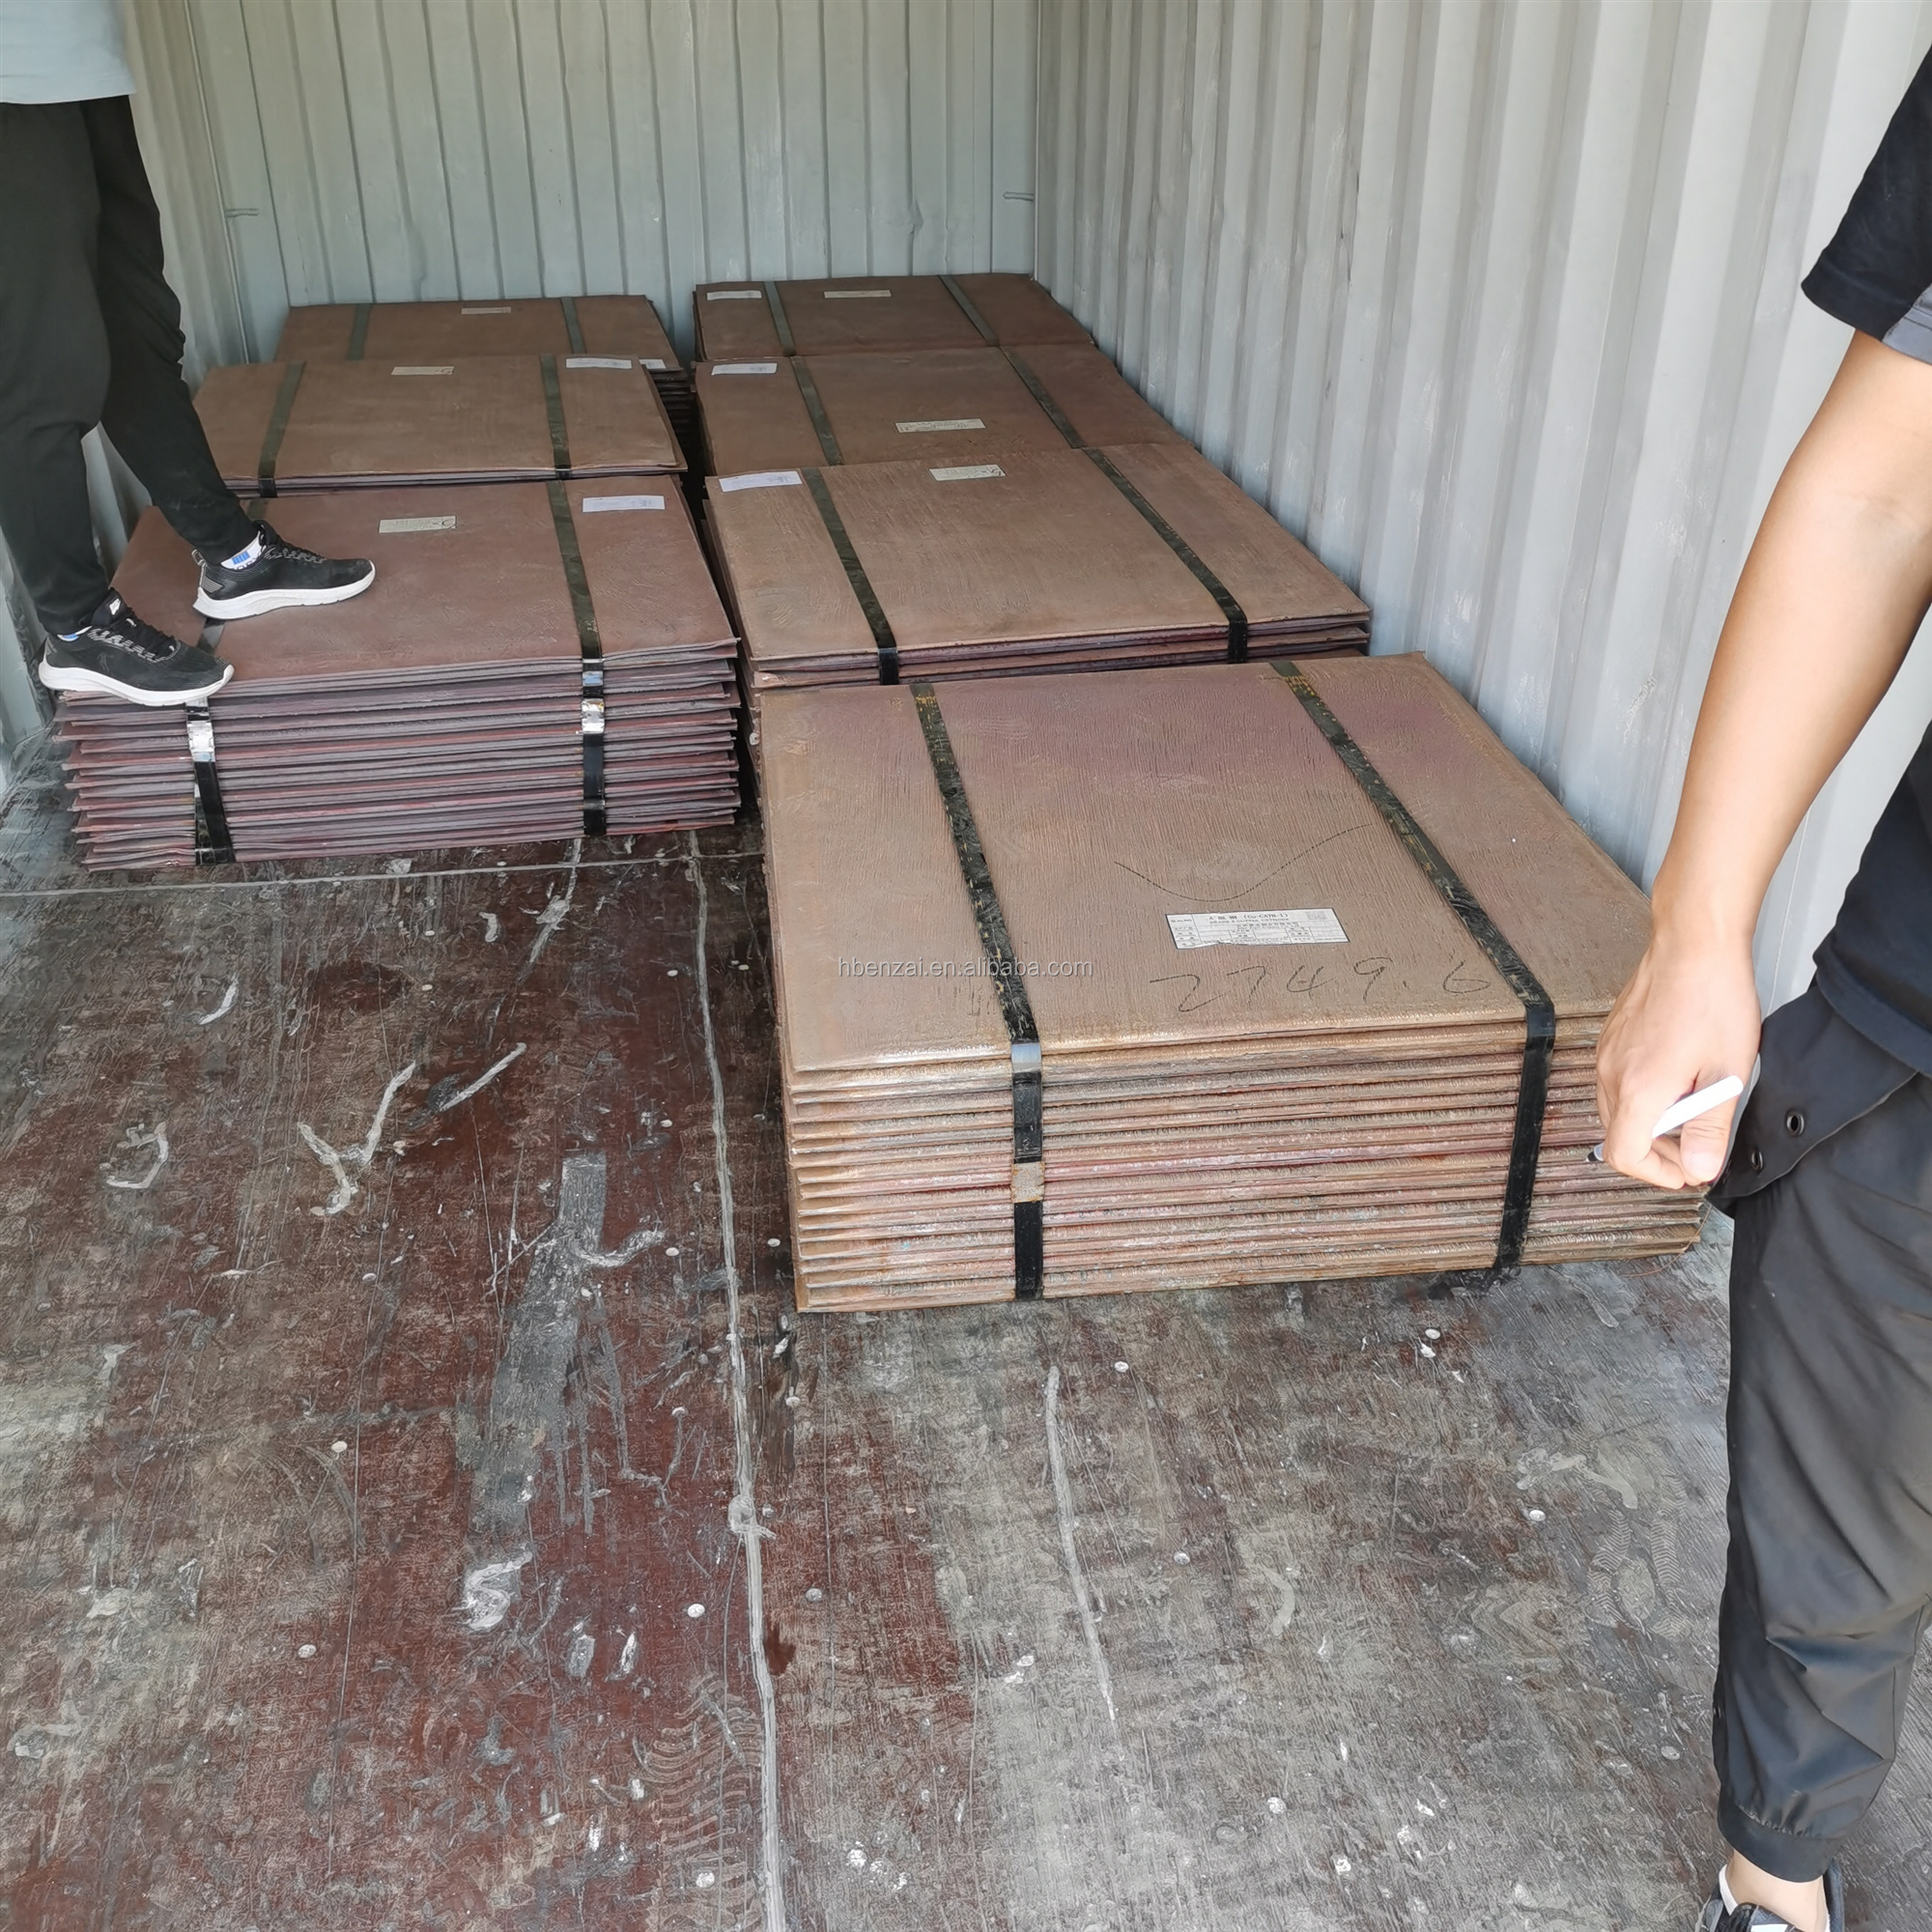 99.99% pure copper cathodes with reasonable price